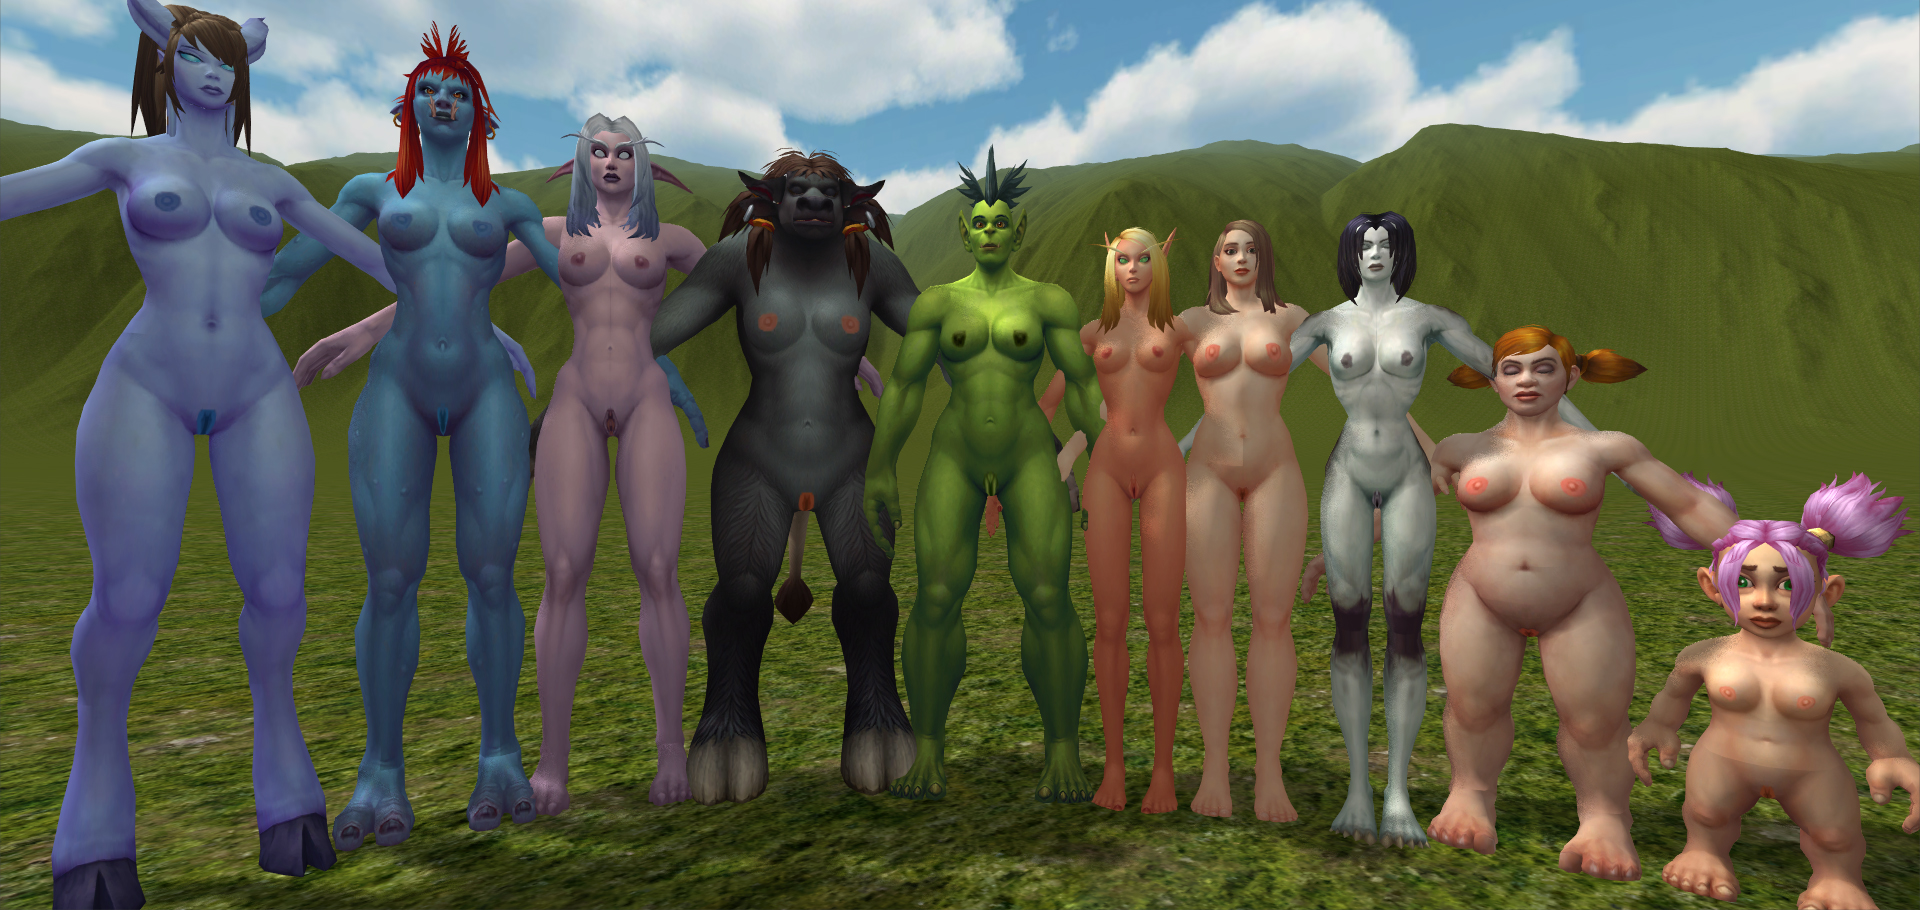 Naked world of warcraft girls having sex  erotic vids